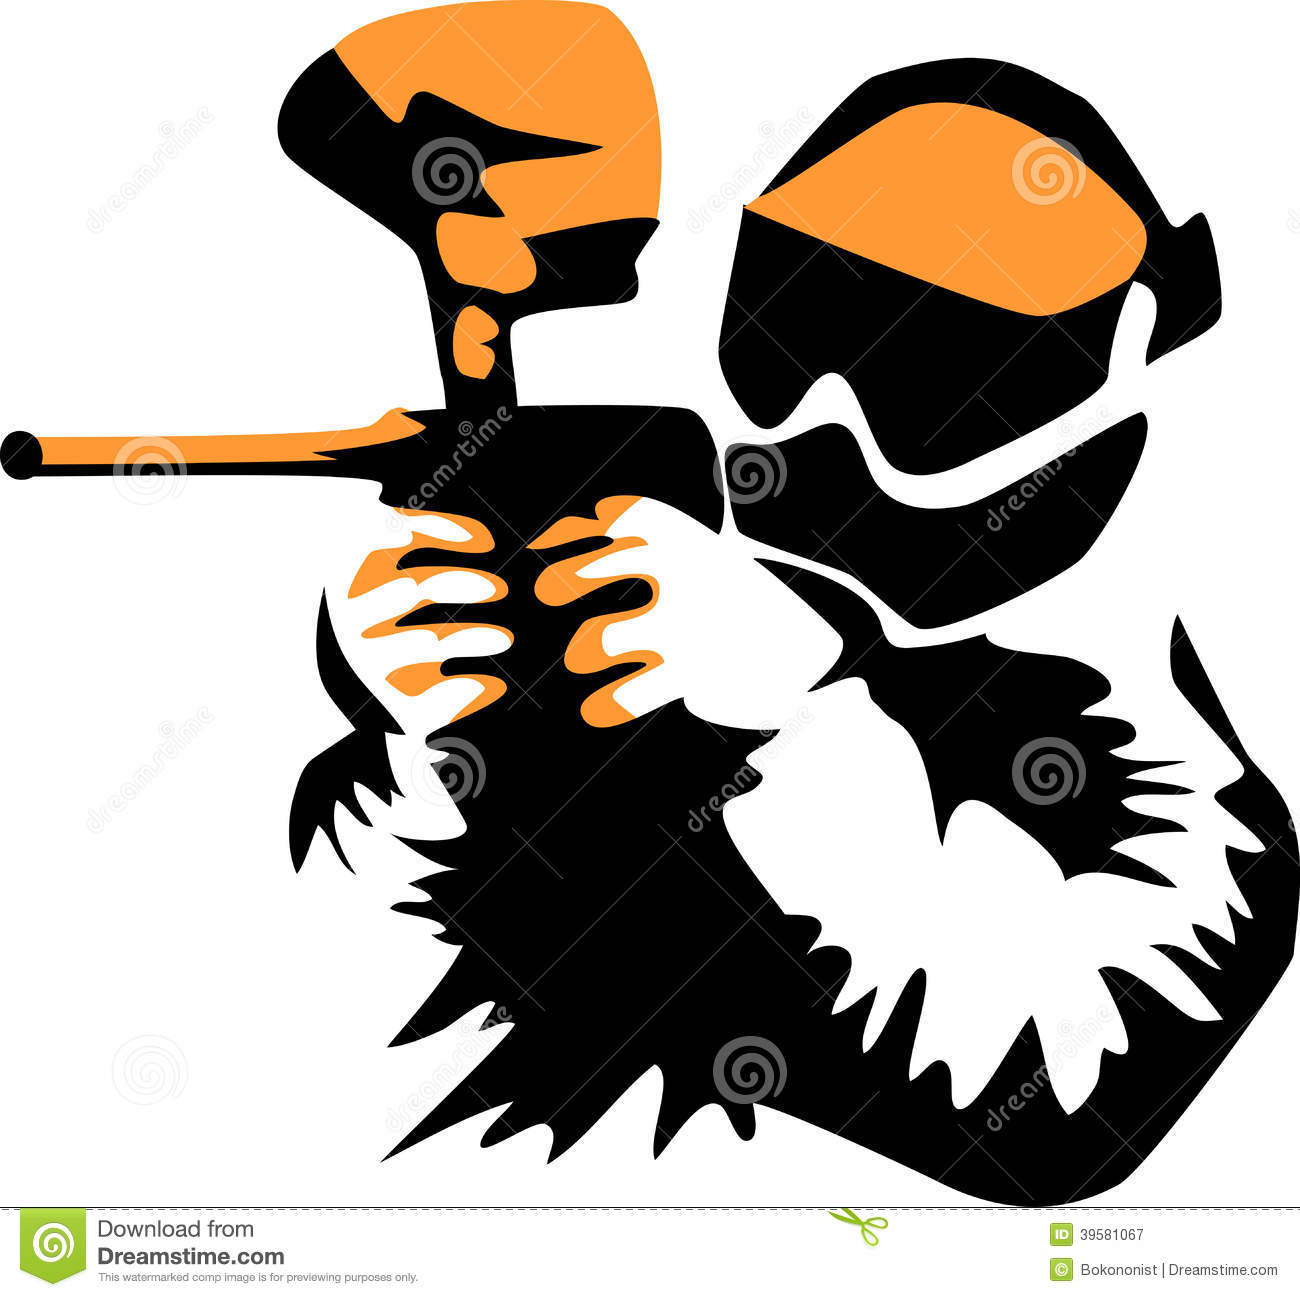 Paintballspieler - stilisierte schwarze und orange Illustration.